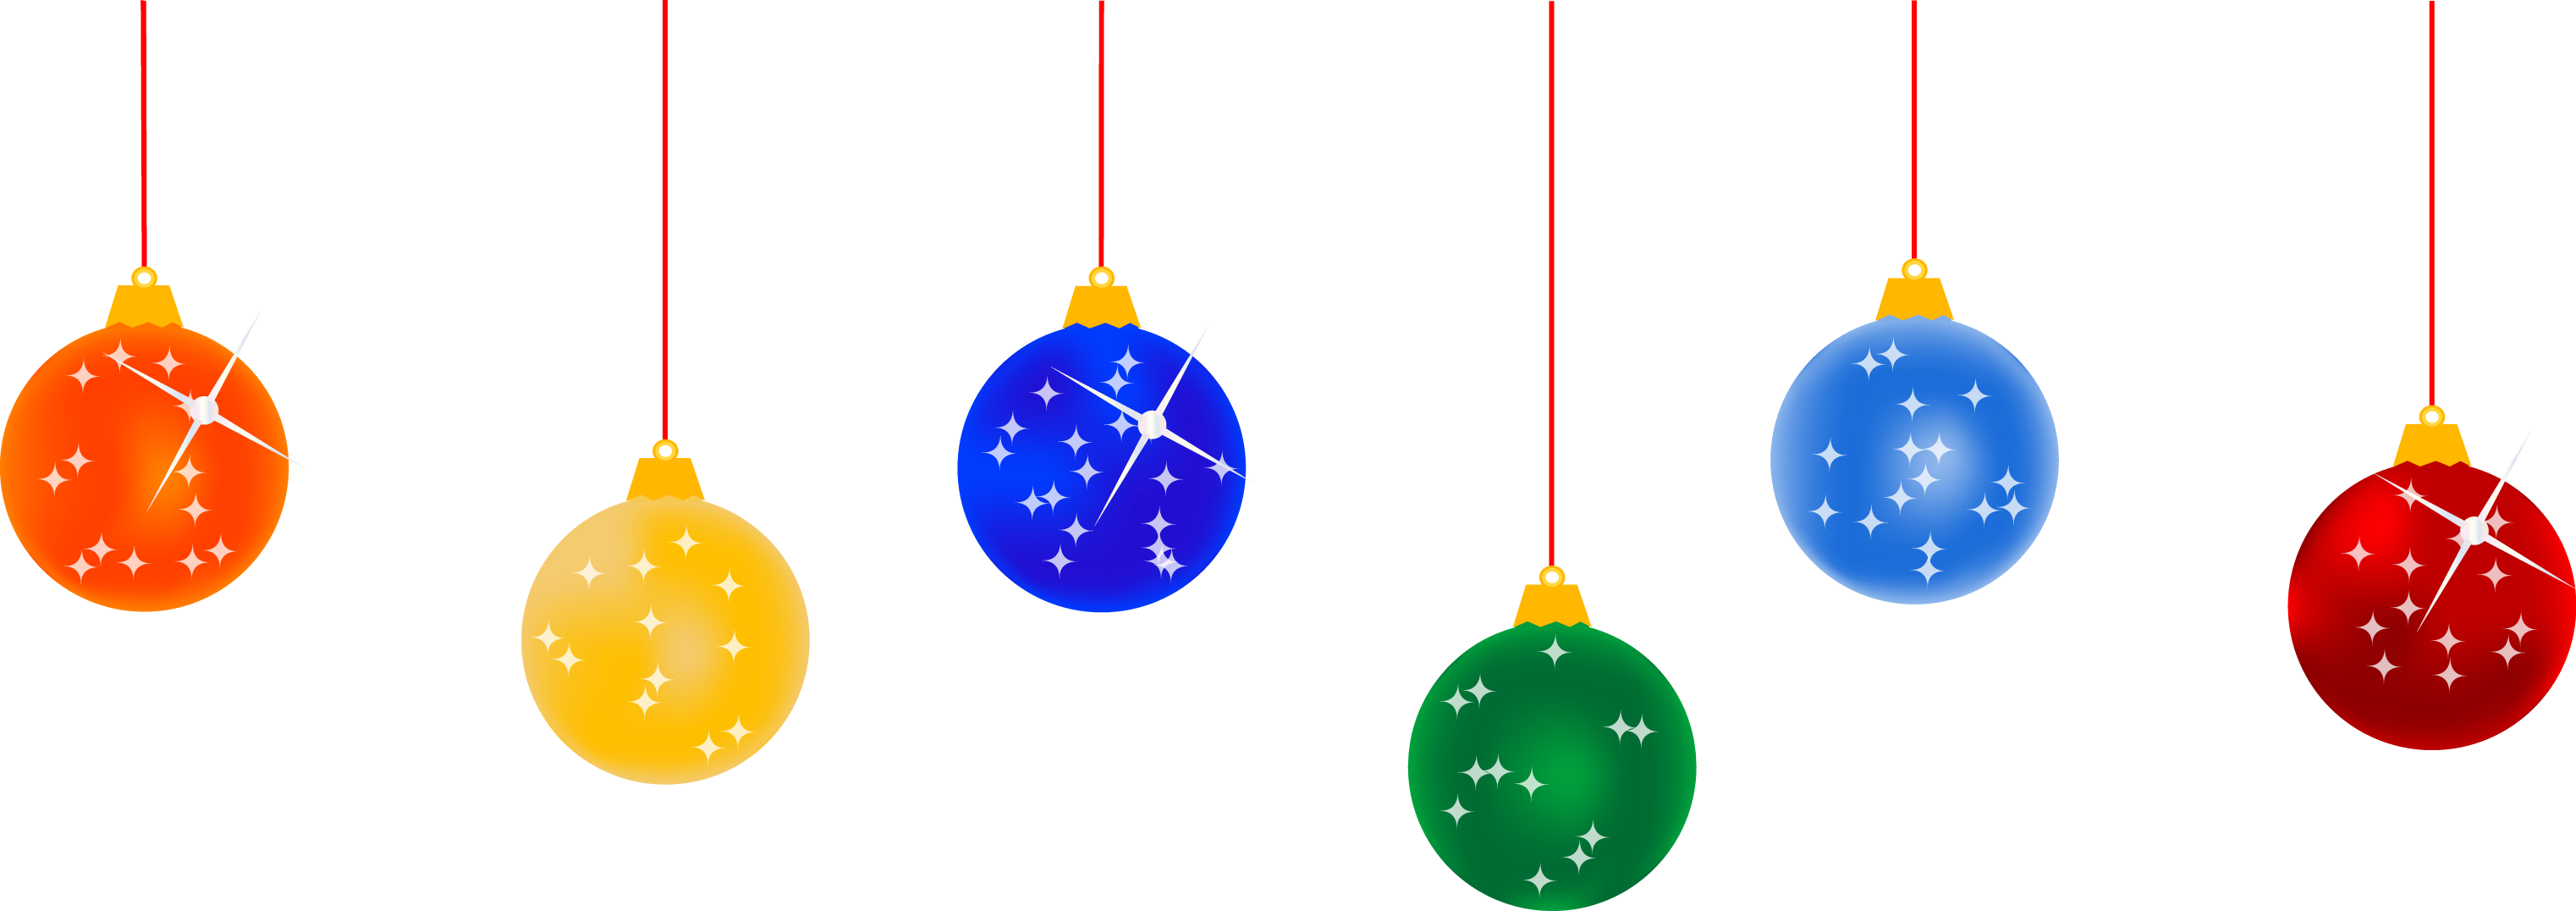 Free christmas png. Transparent images all